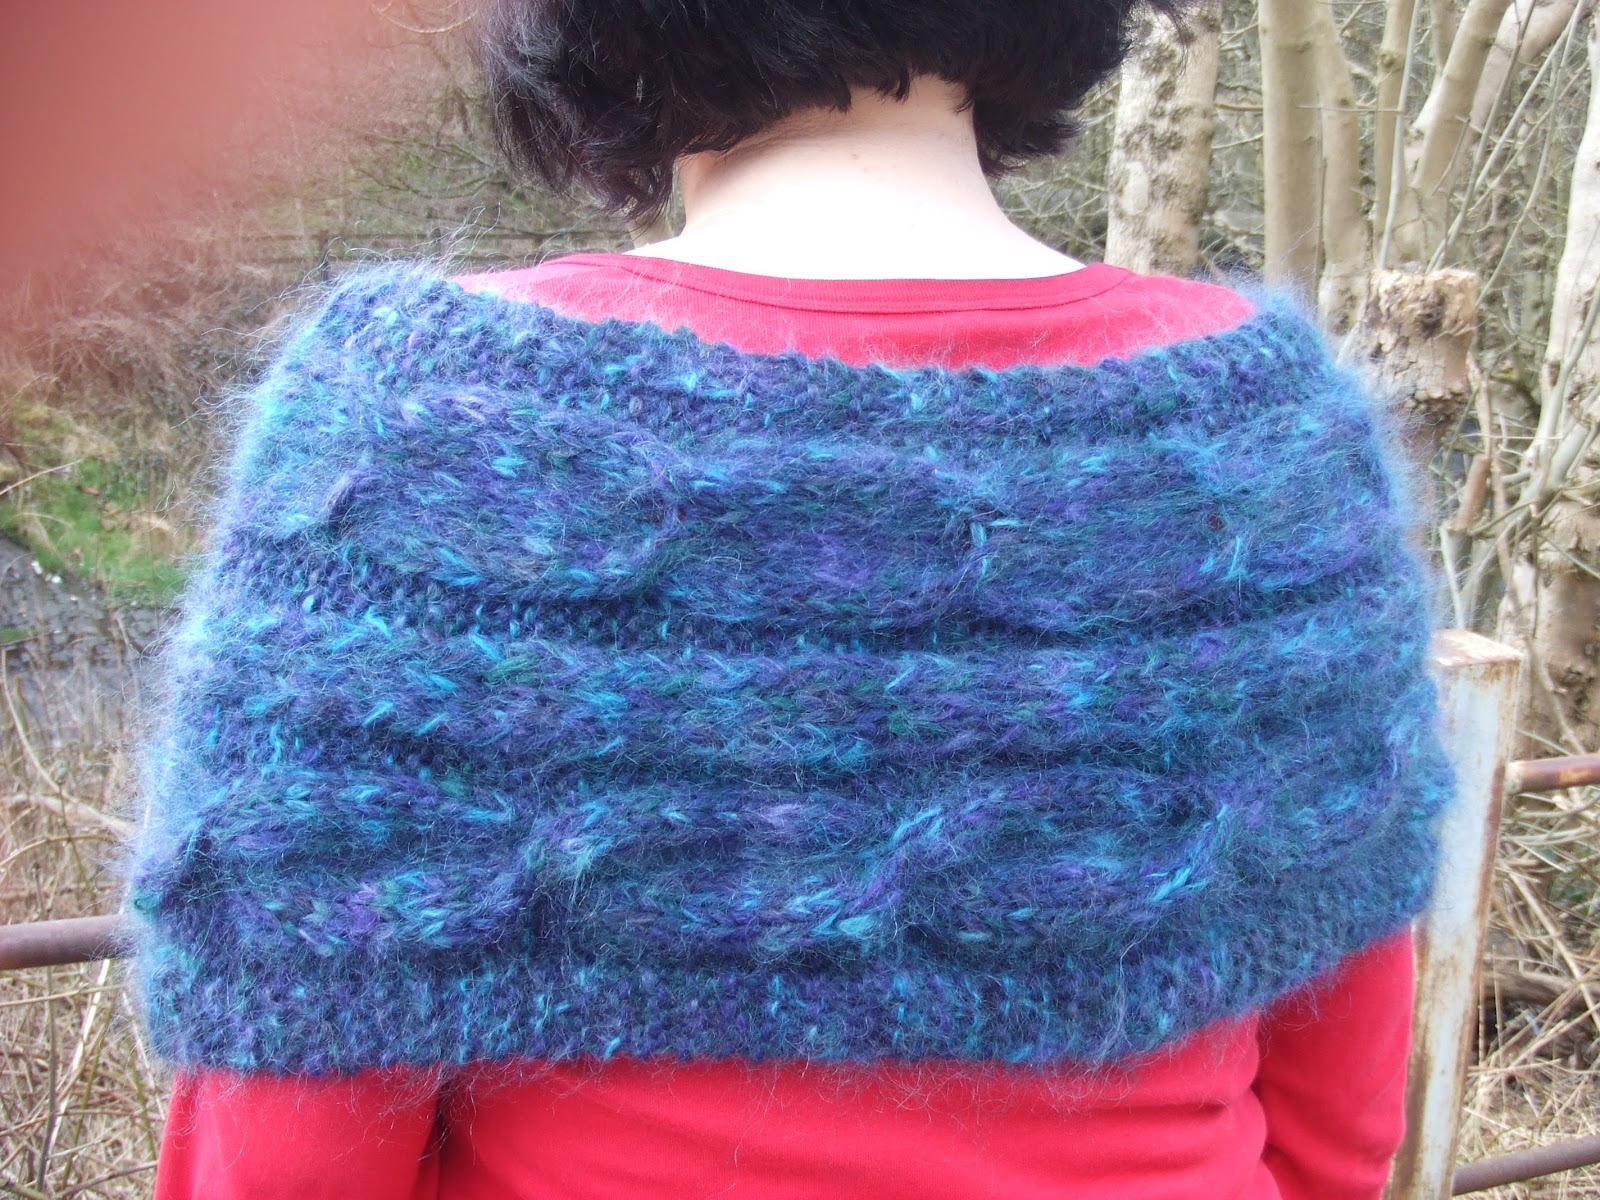 Crafting With Mel: Knitted Mohair Shrug